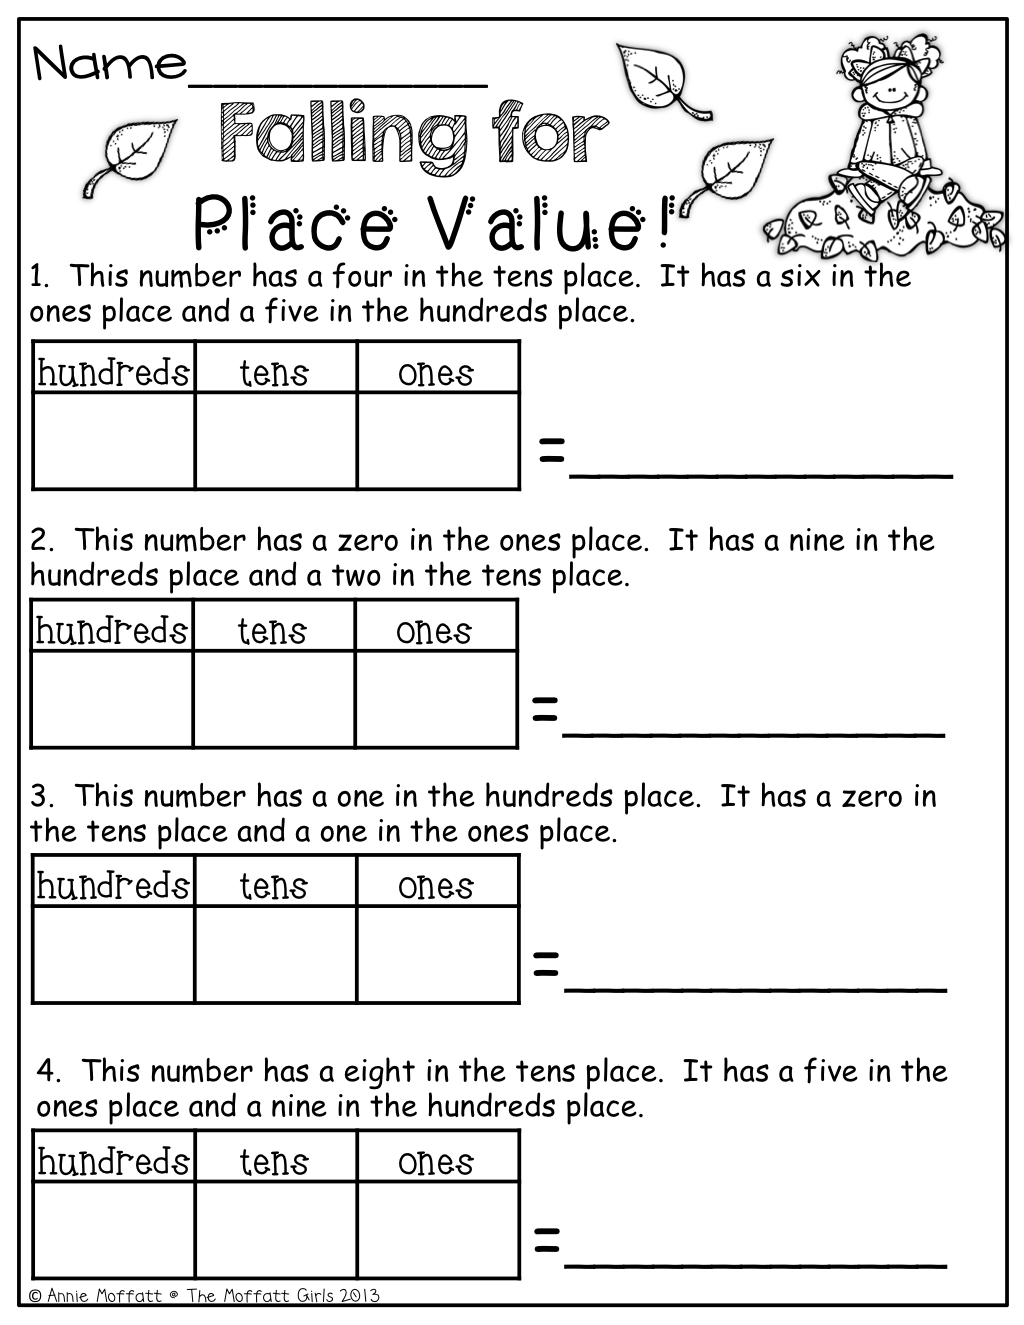 place value math math math classroom second grade math. Black Bedroom Furniture Sets. Home Design Ideas